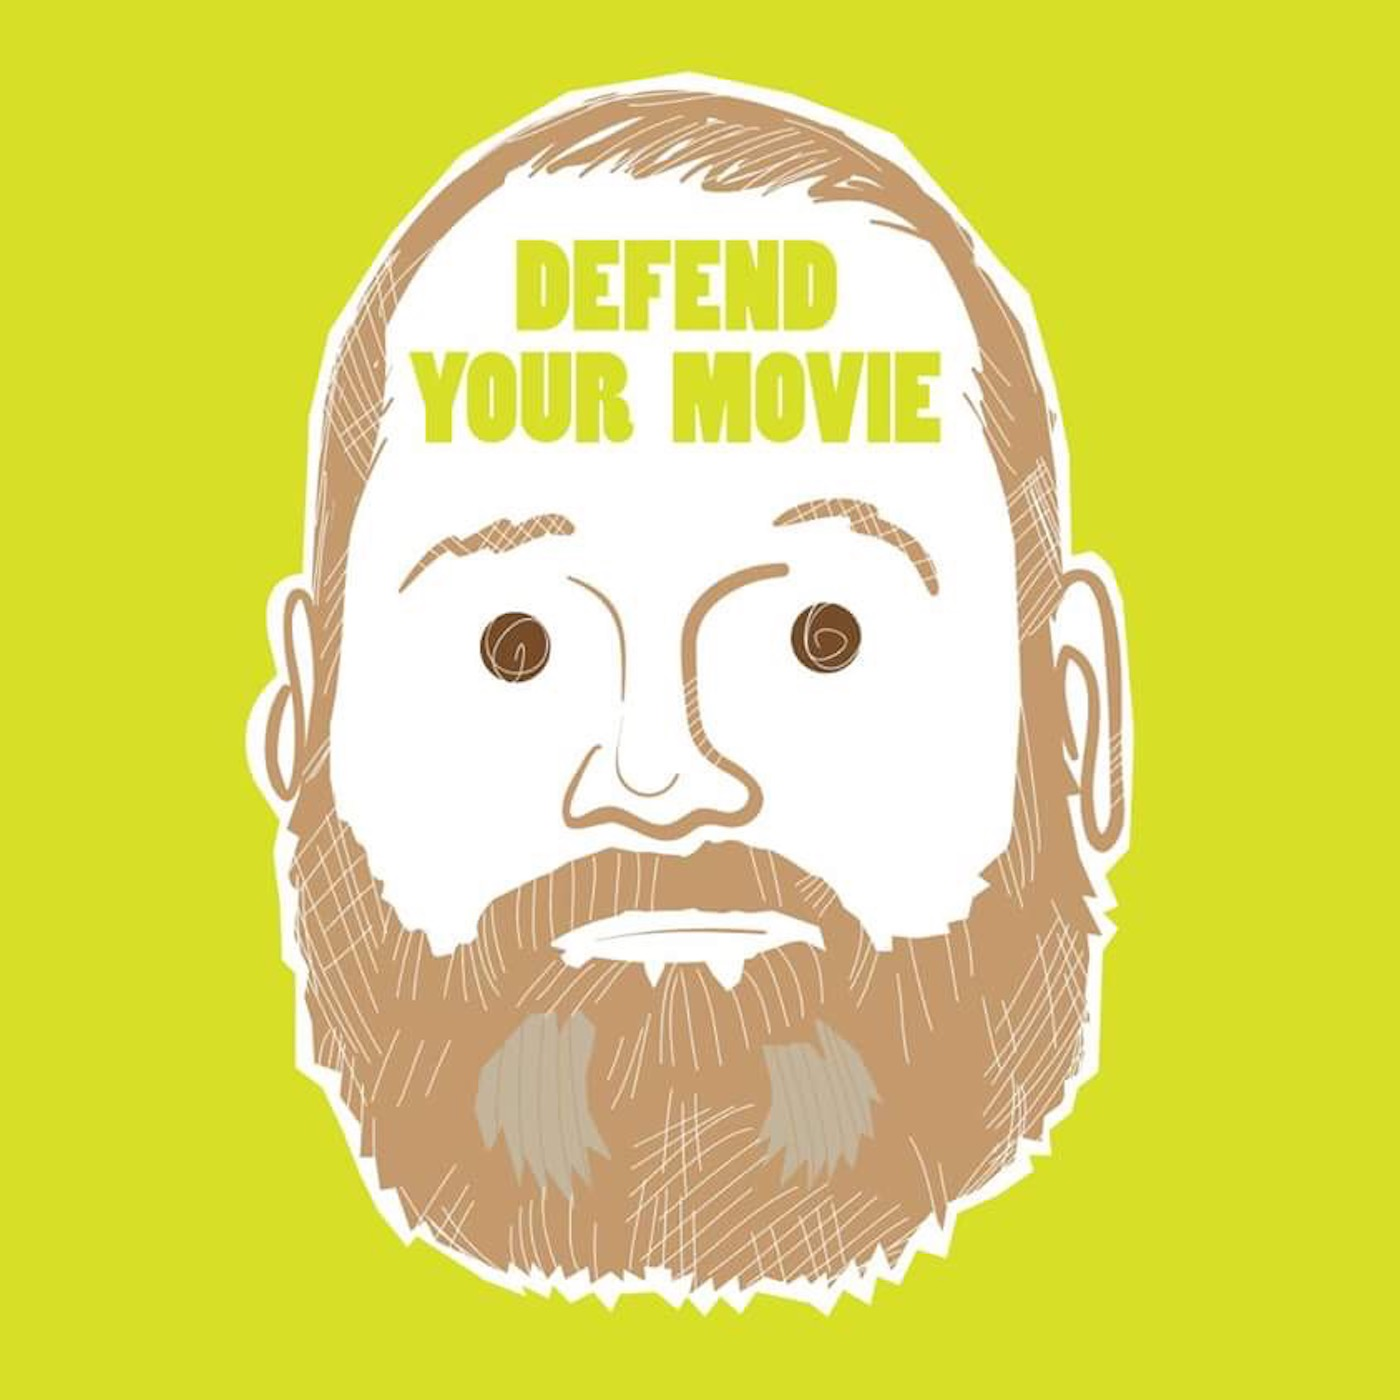 Defend Your Opening Re-Release